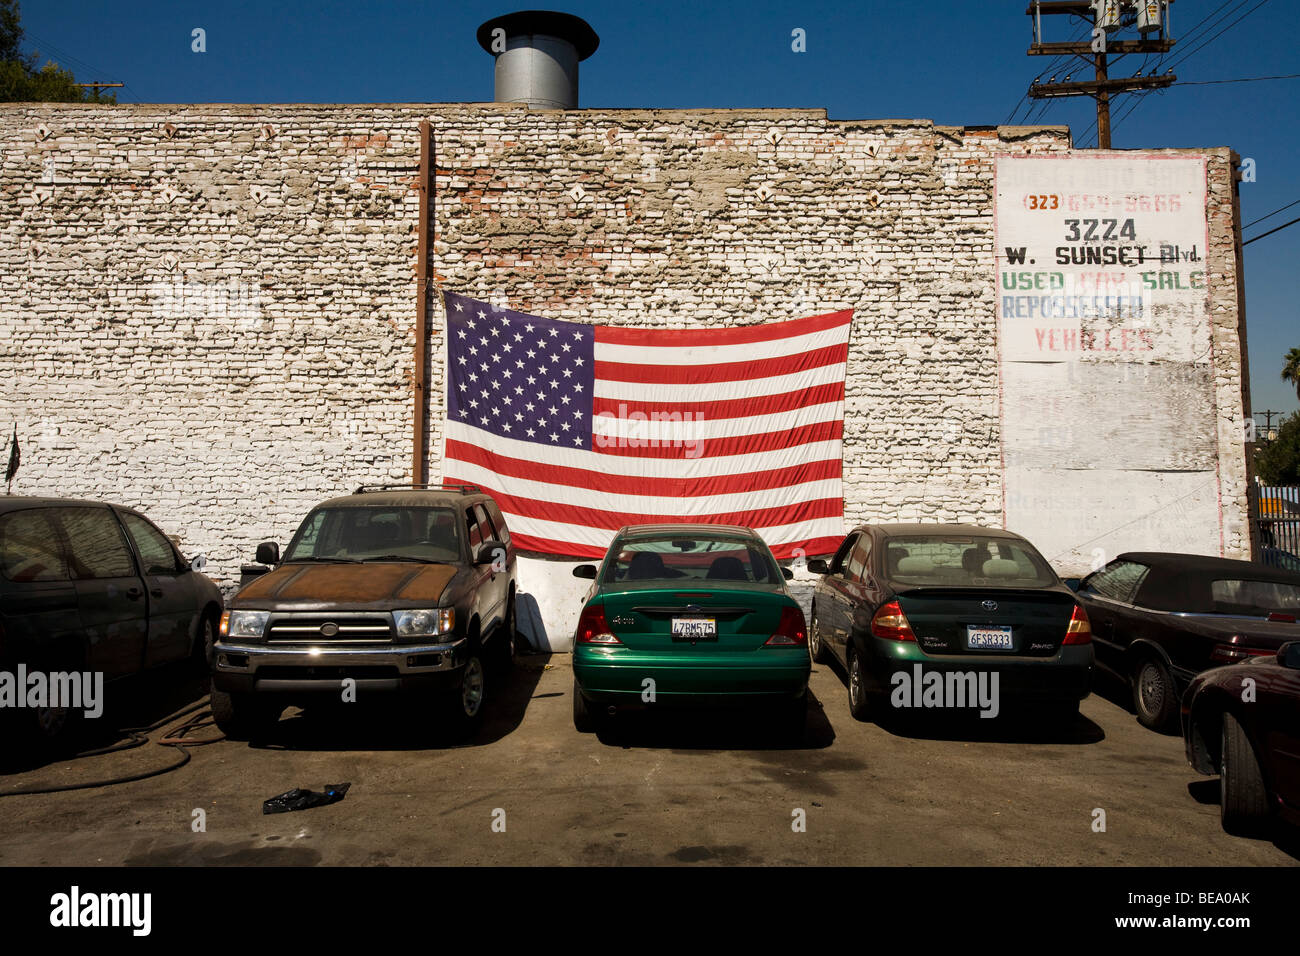 Used Car Dealer Stock Photos & Used Car Dealer Stock Images - Alamy